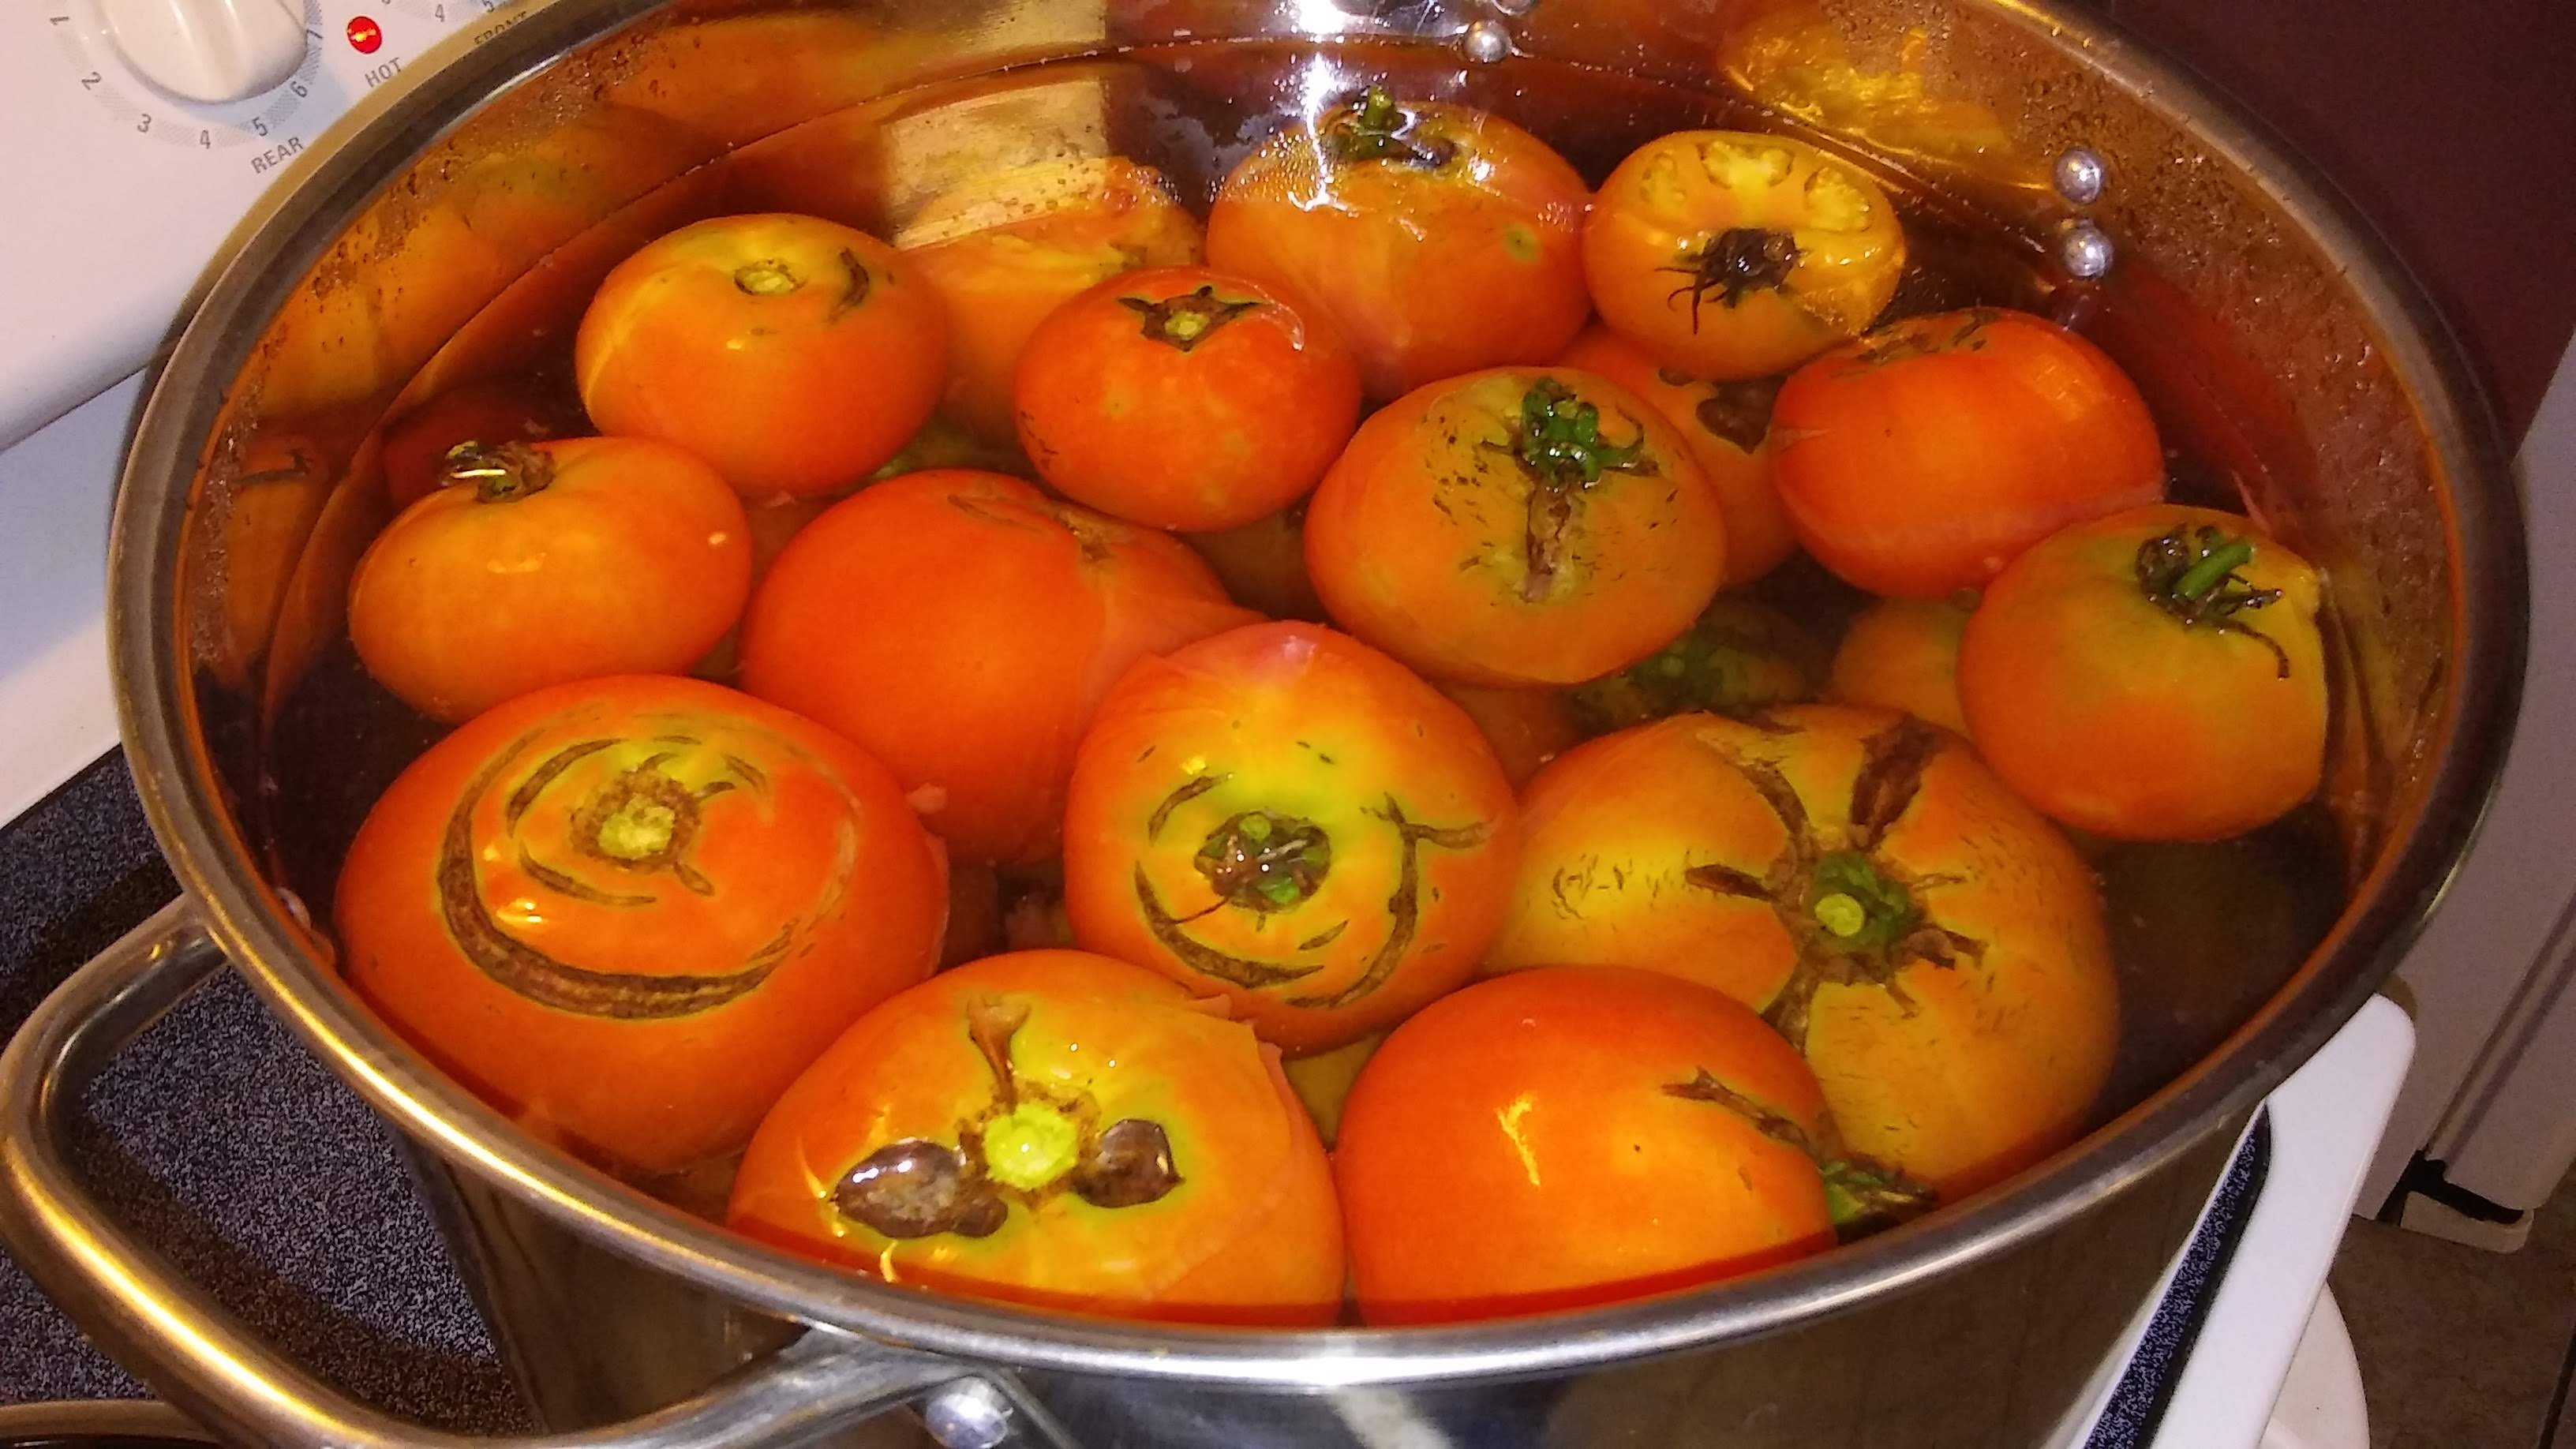 Drop Tomatoes into boiling water